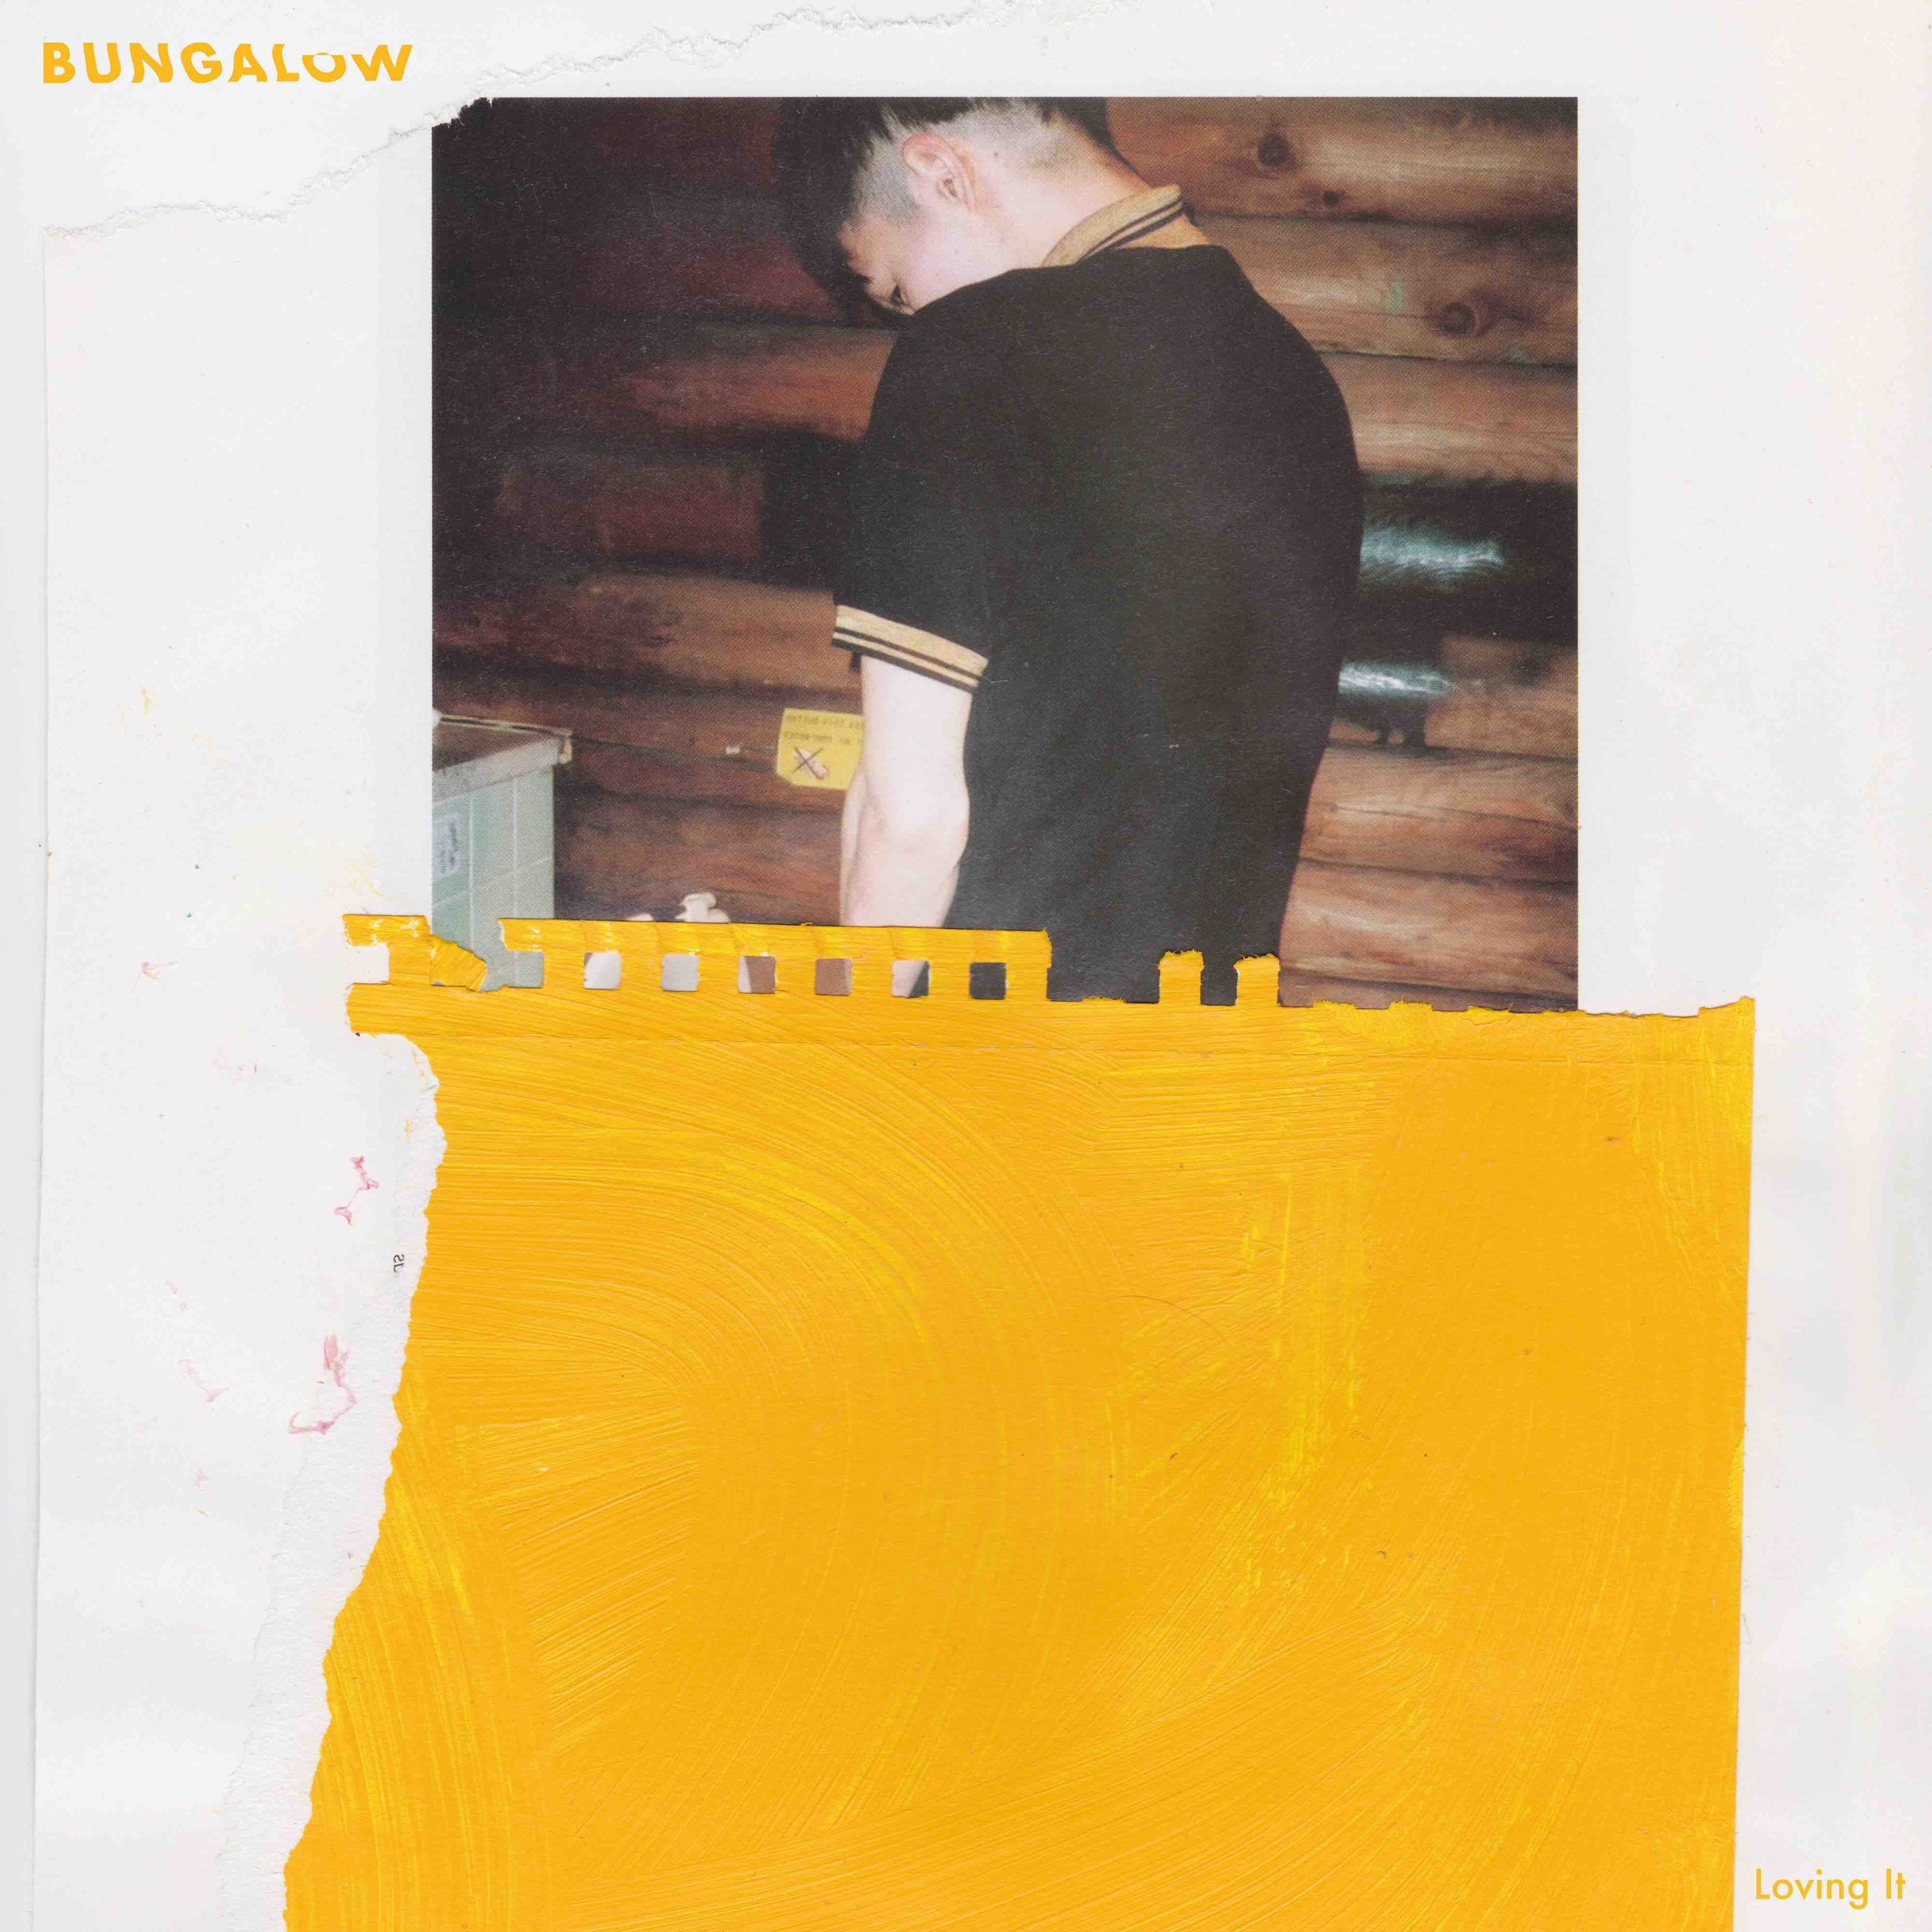 BUNGALOW - Loving It - Artwork.jpg